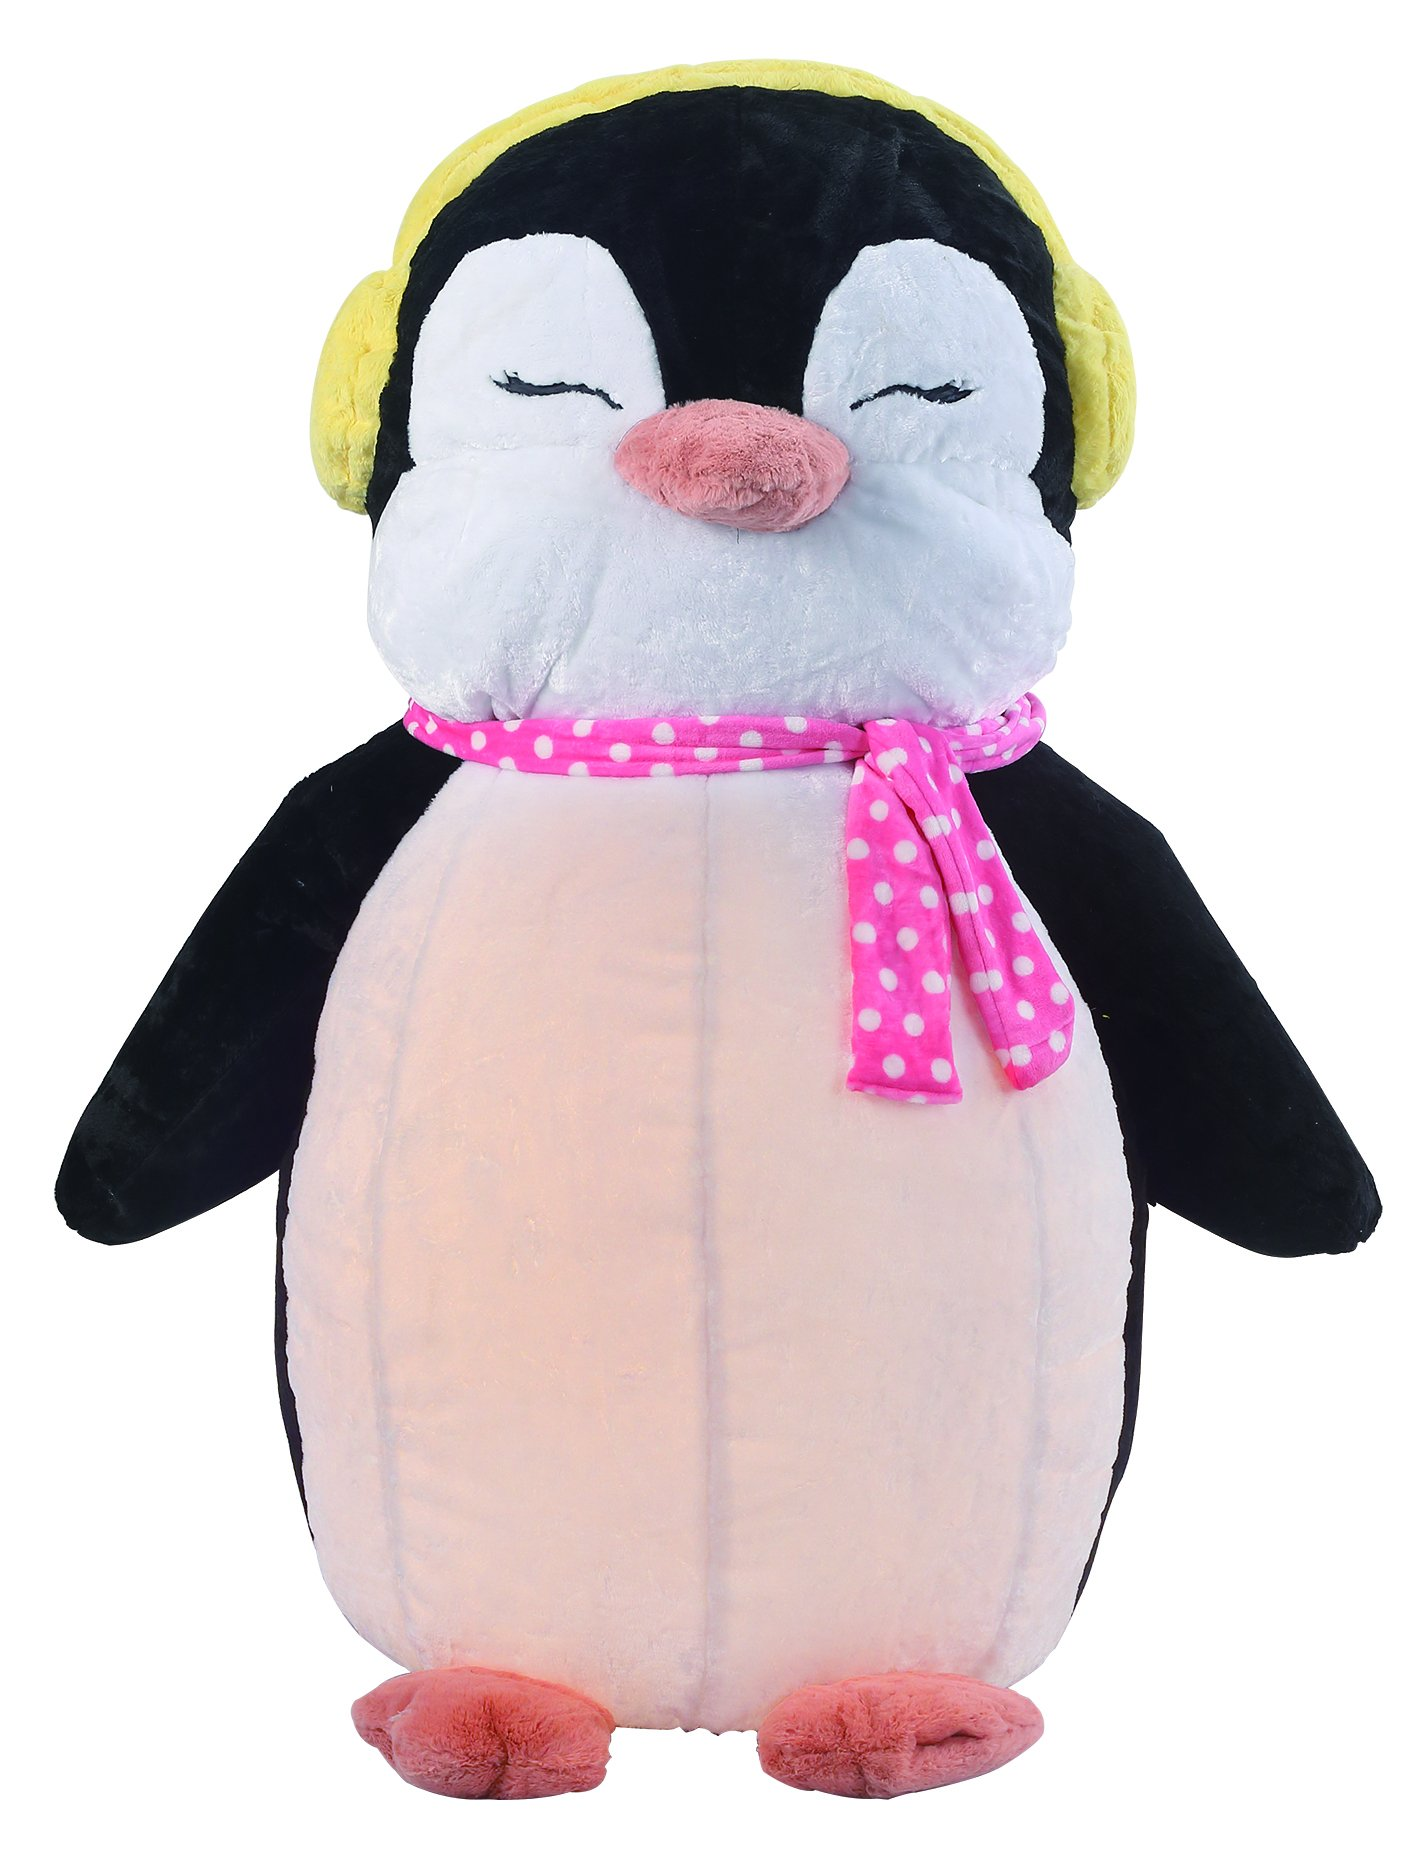 VIDAMORE 5FT Tall Christmas Inflatable Penguin Lawn Yard Garden outdoor decoration